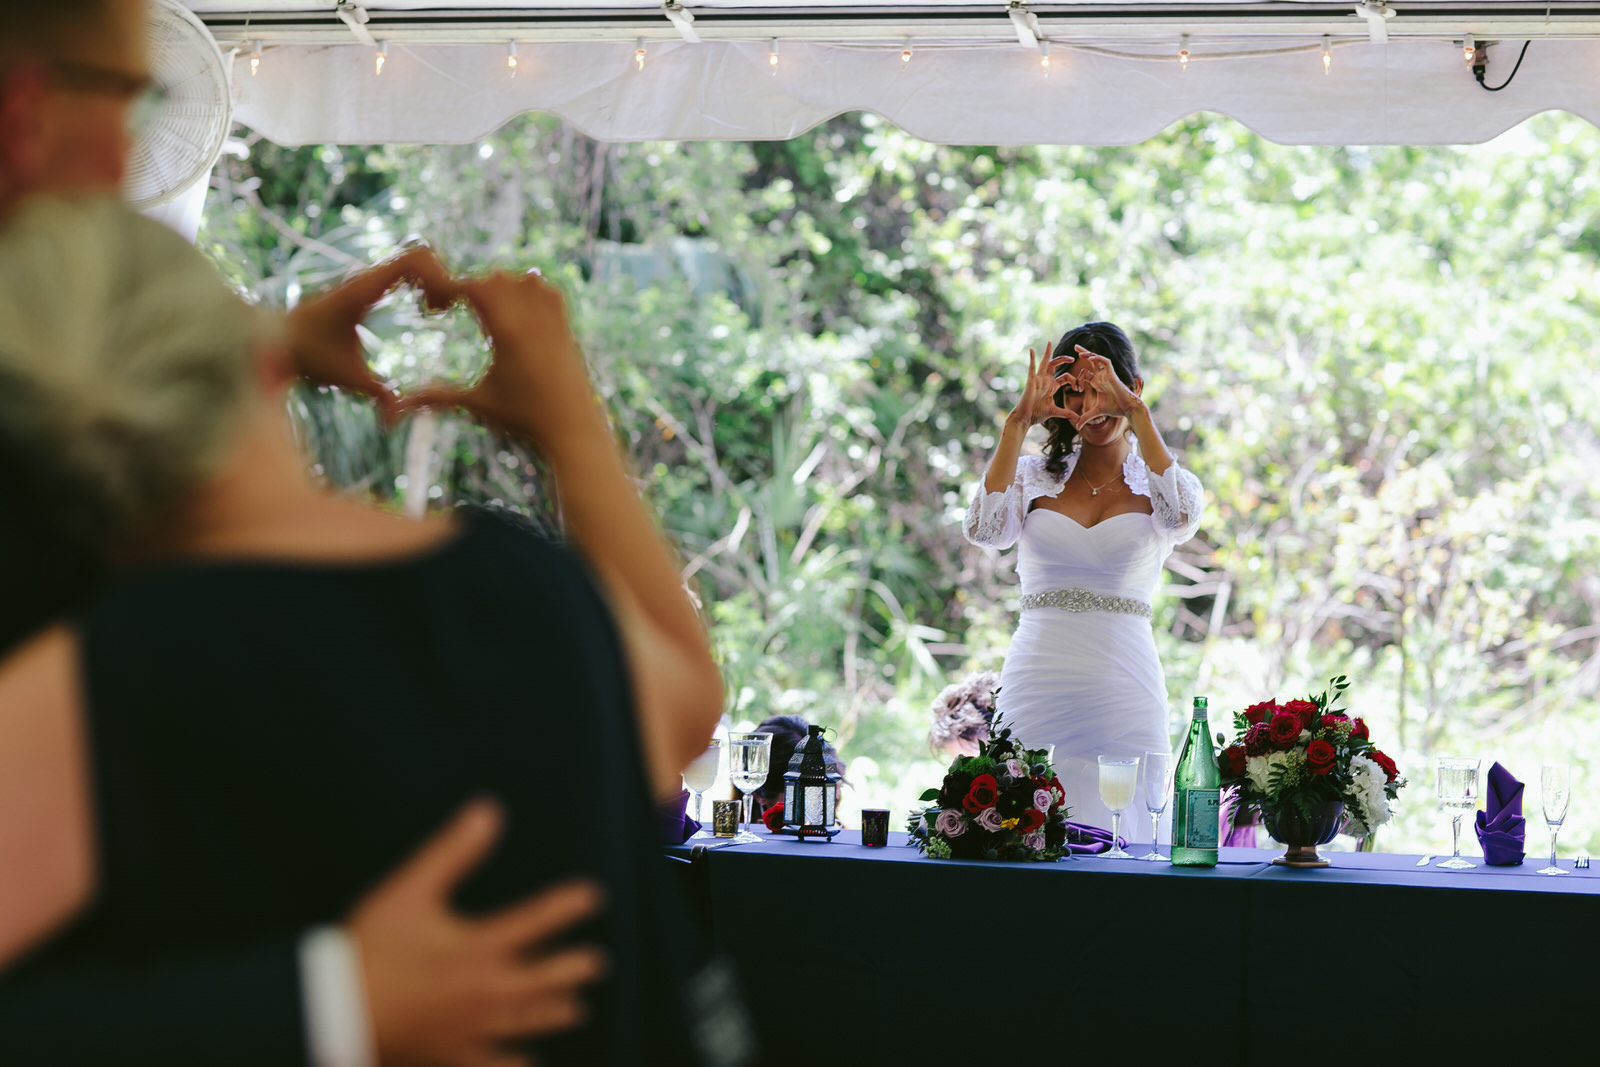 kashi-wedding-reception-tiny-house-photo-hearts-mother-son-dance-moments.jpg